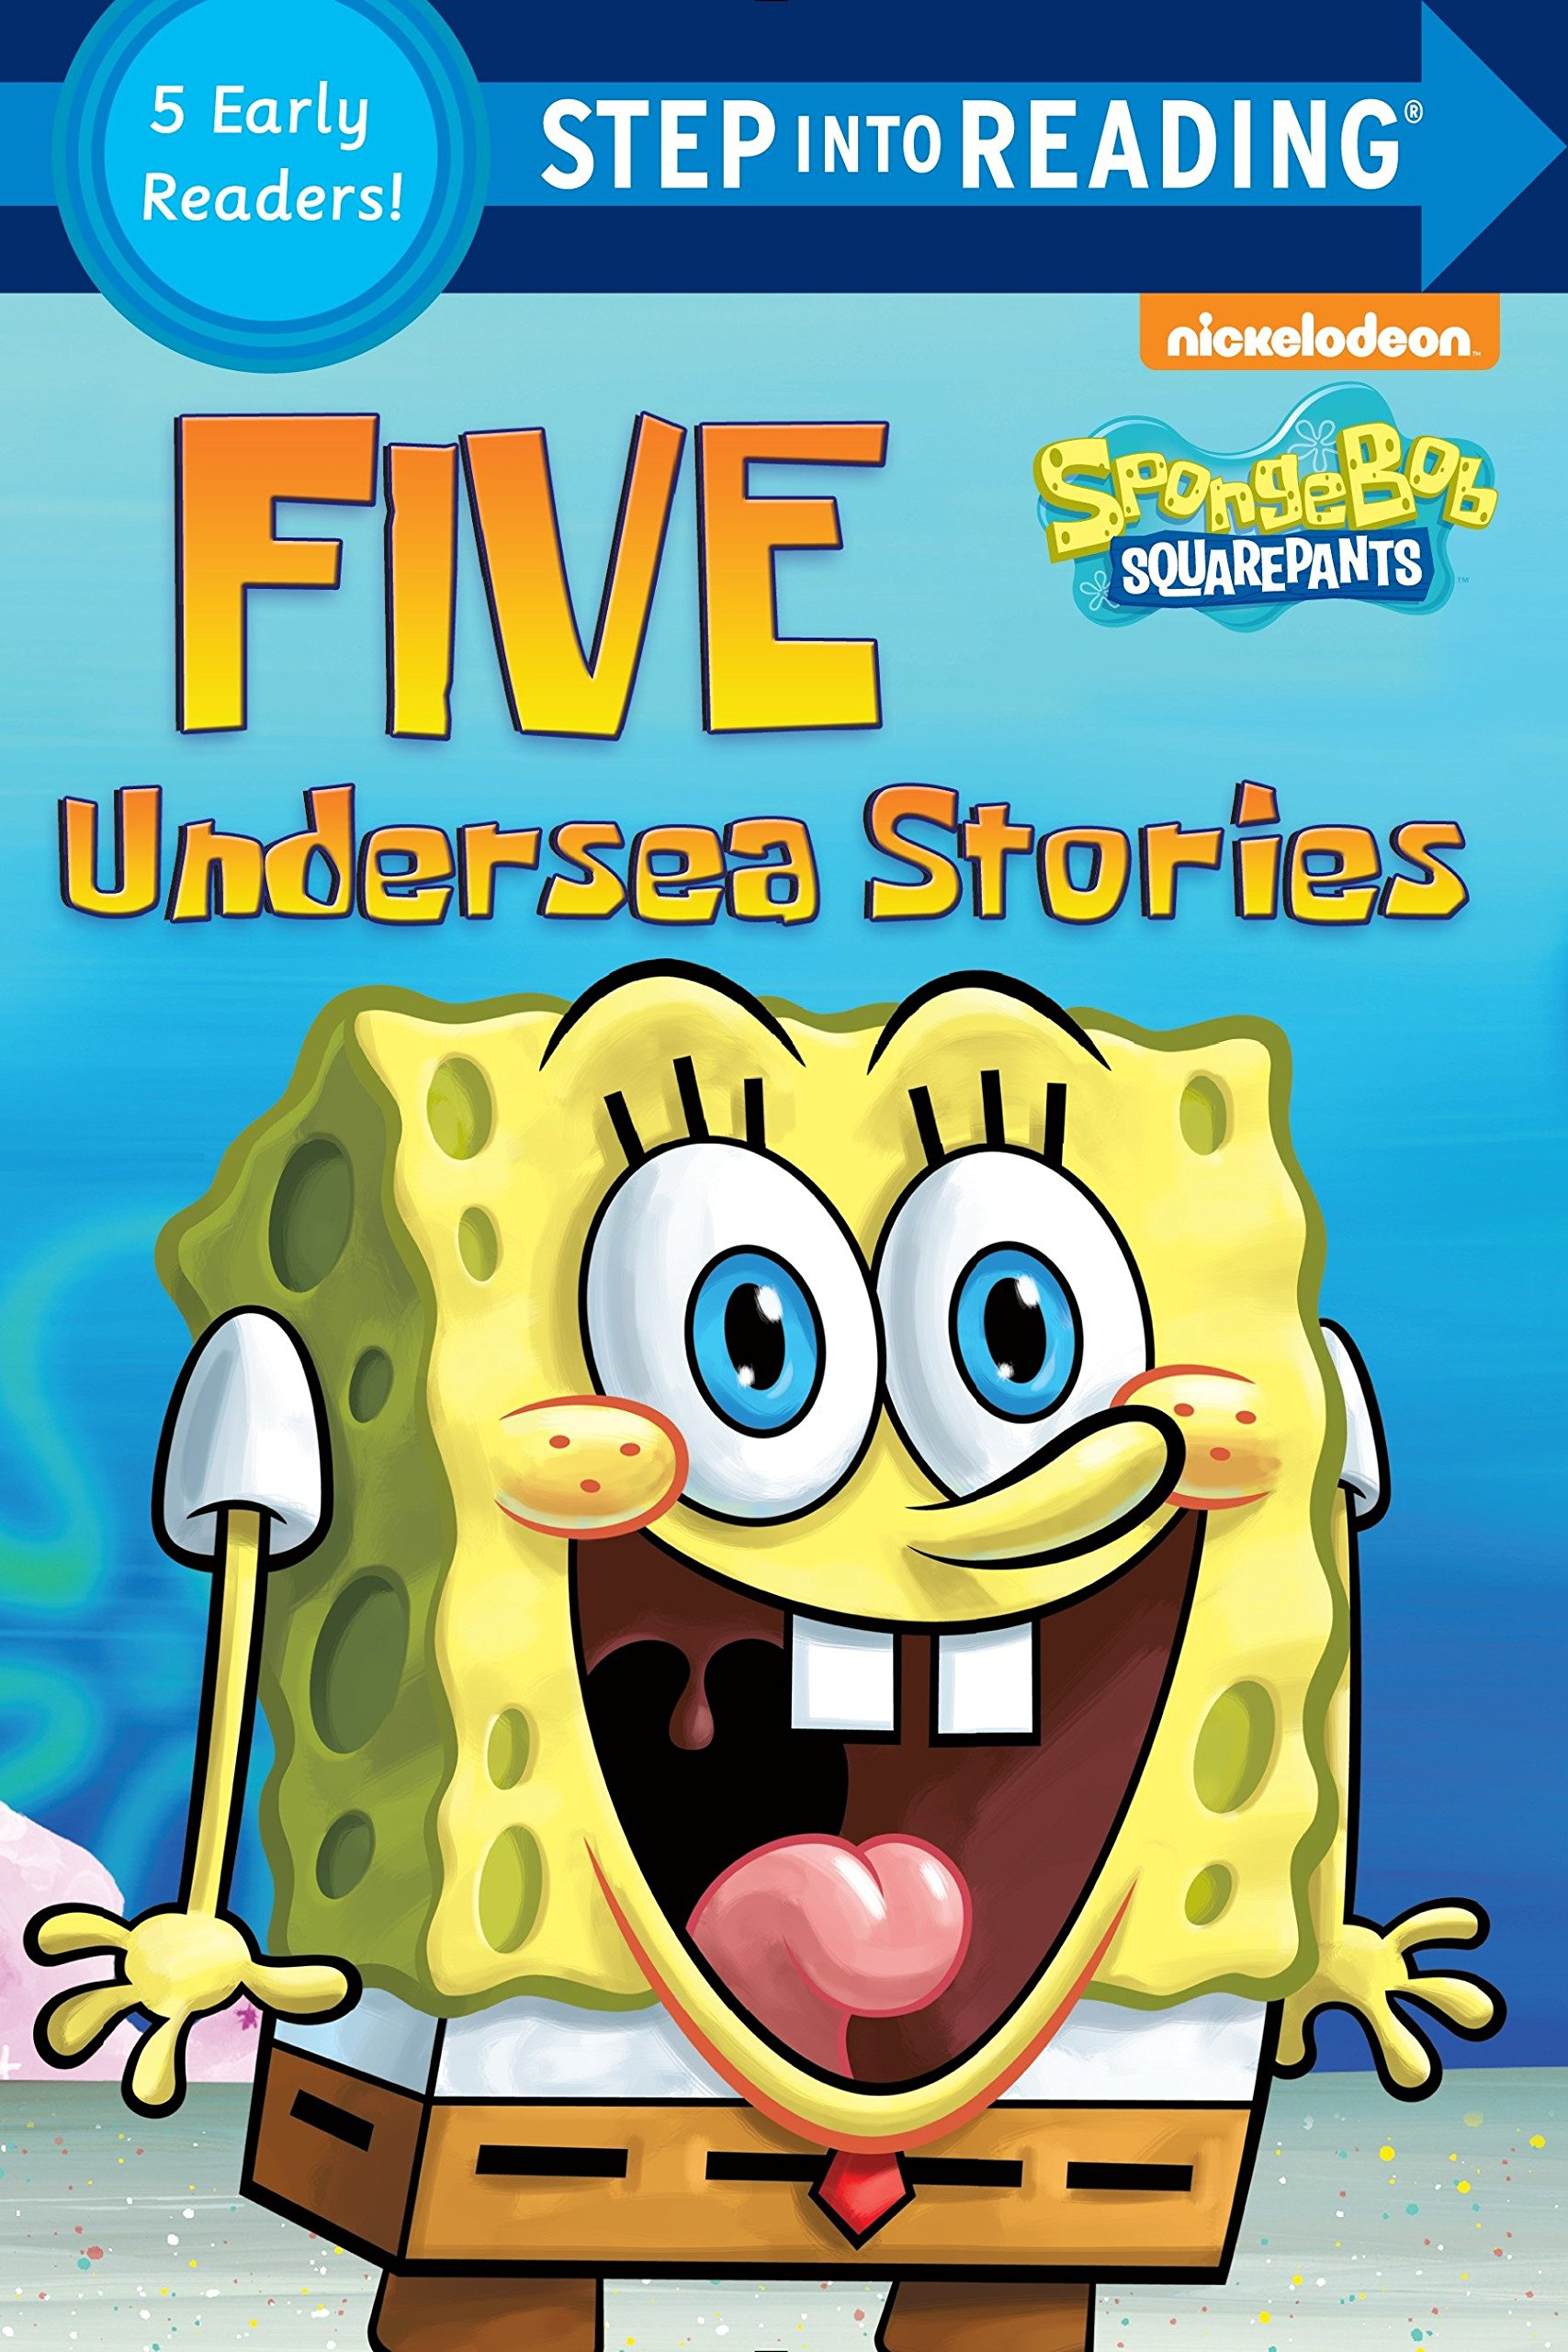 Spongebob Books Amazon